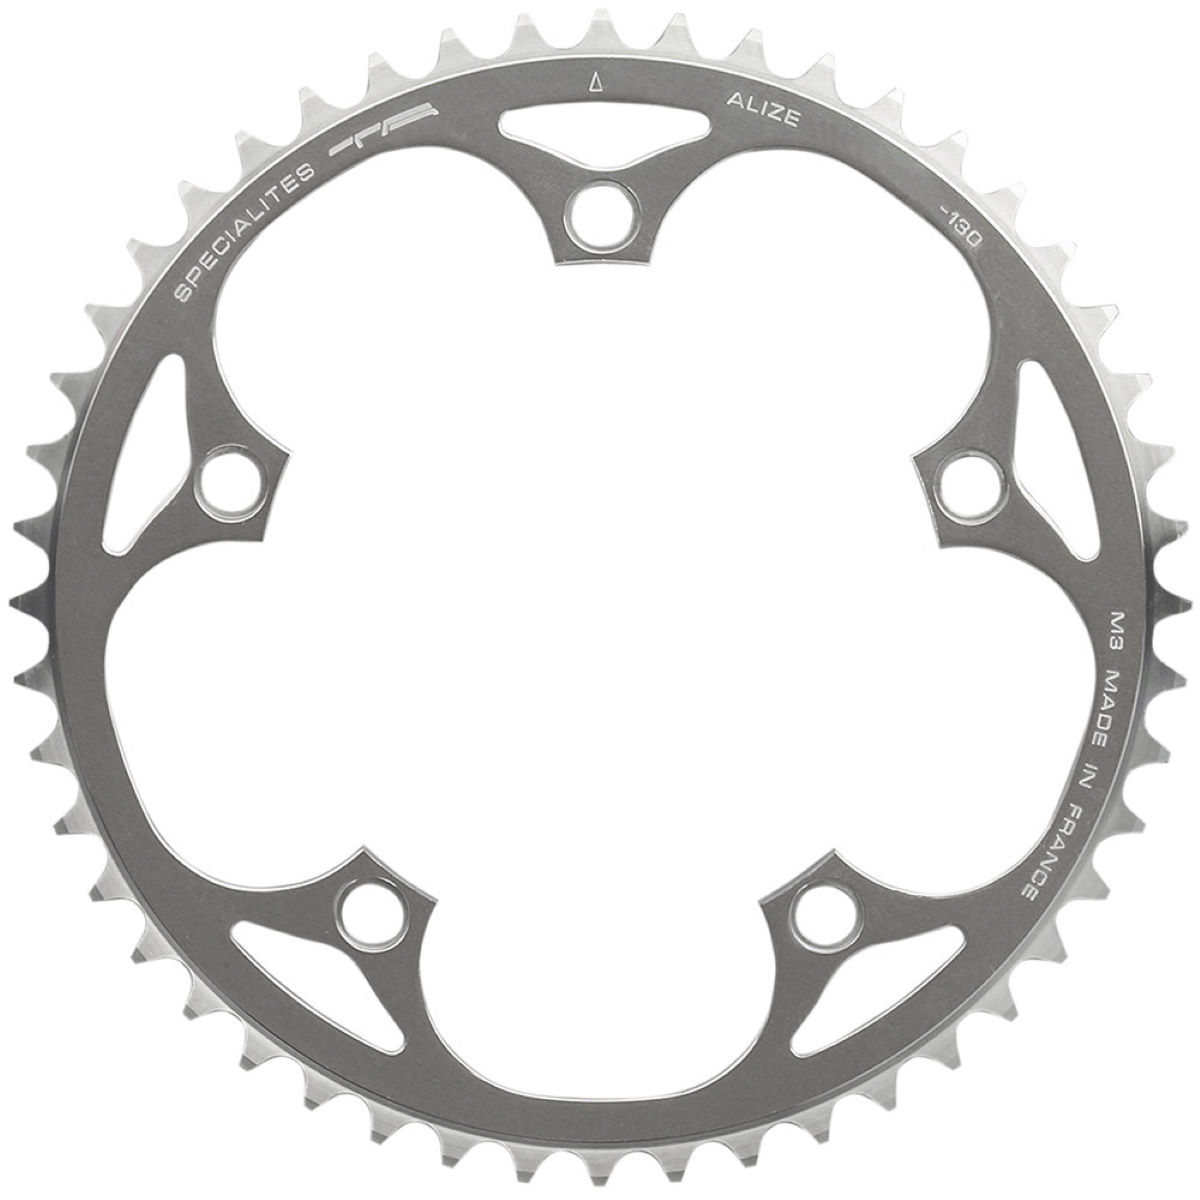 TA TA 130 PCD Alize Outer Chainrings (57-61T)   Chain Rings